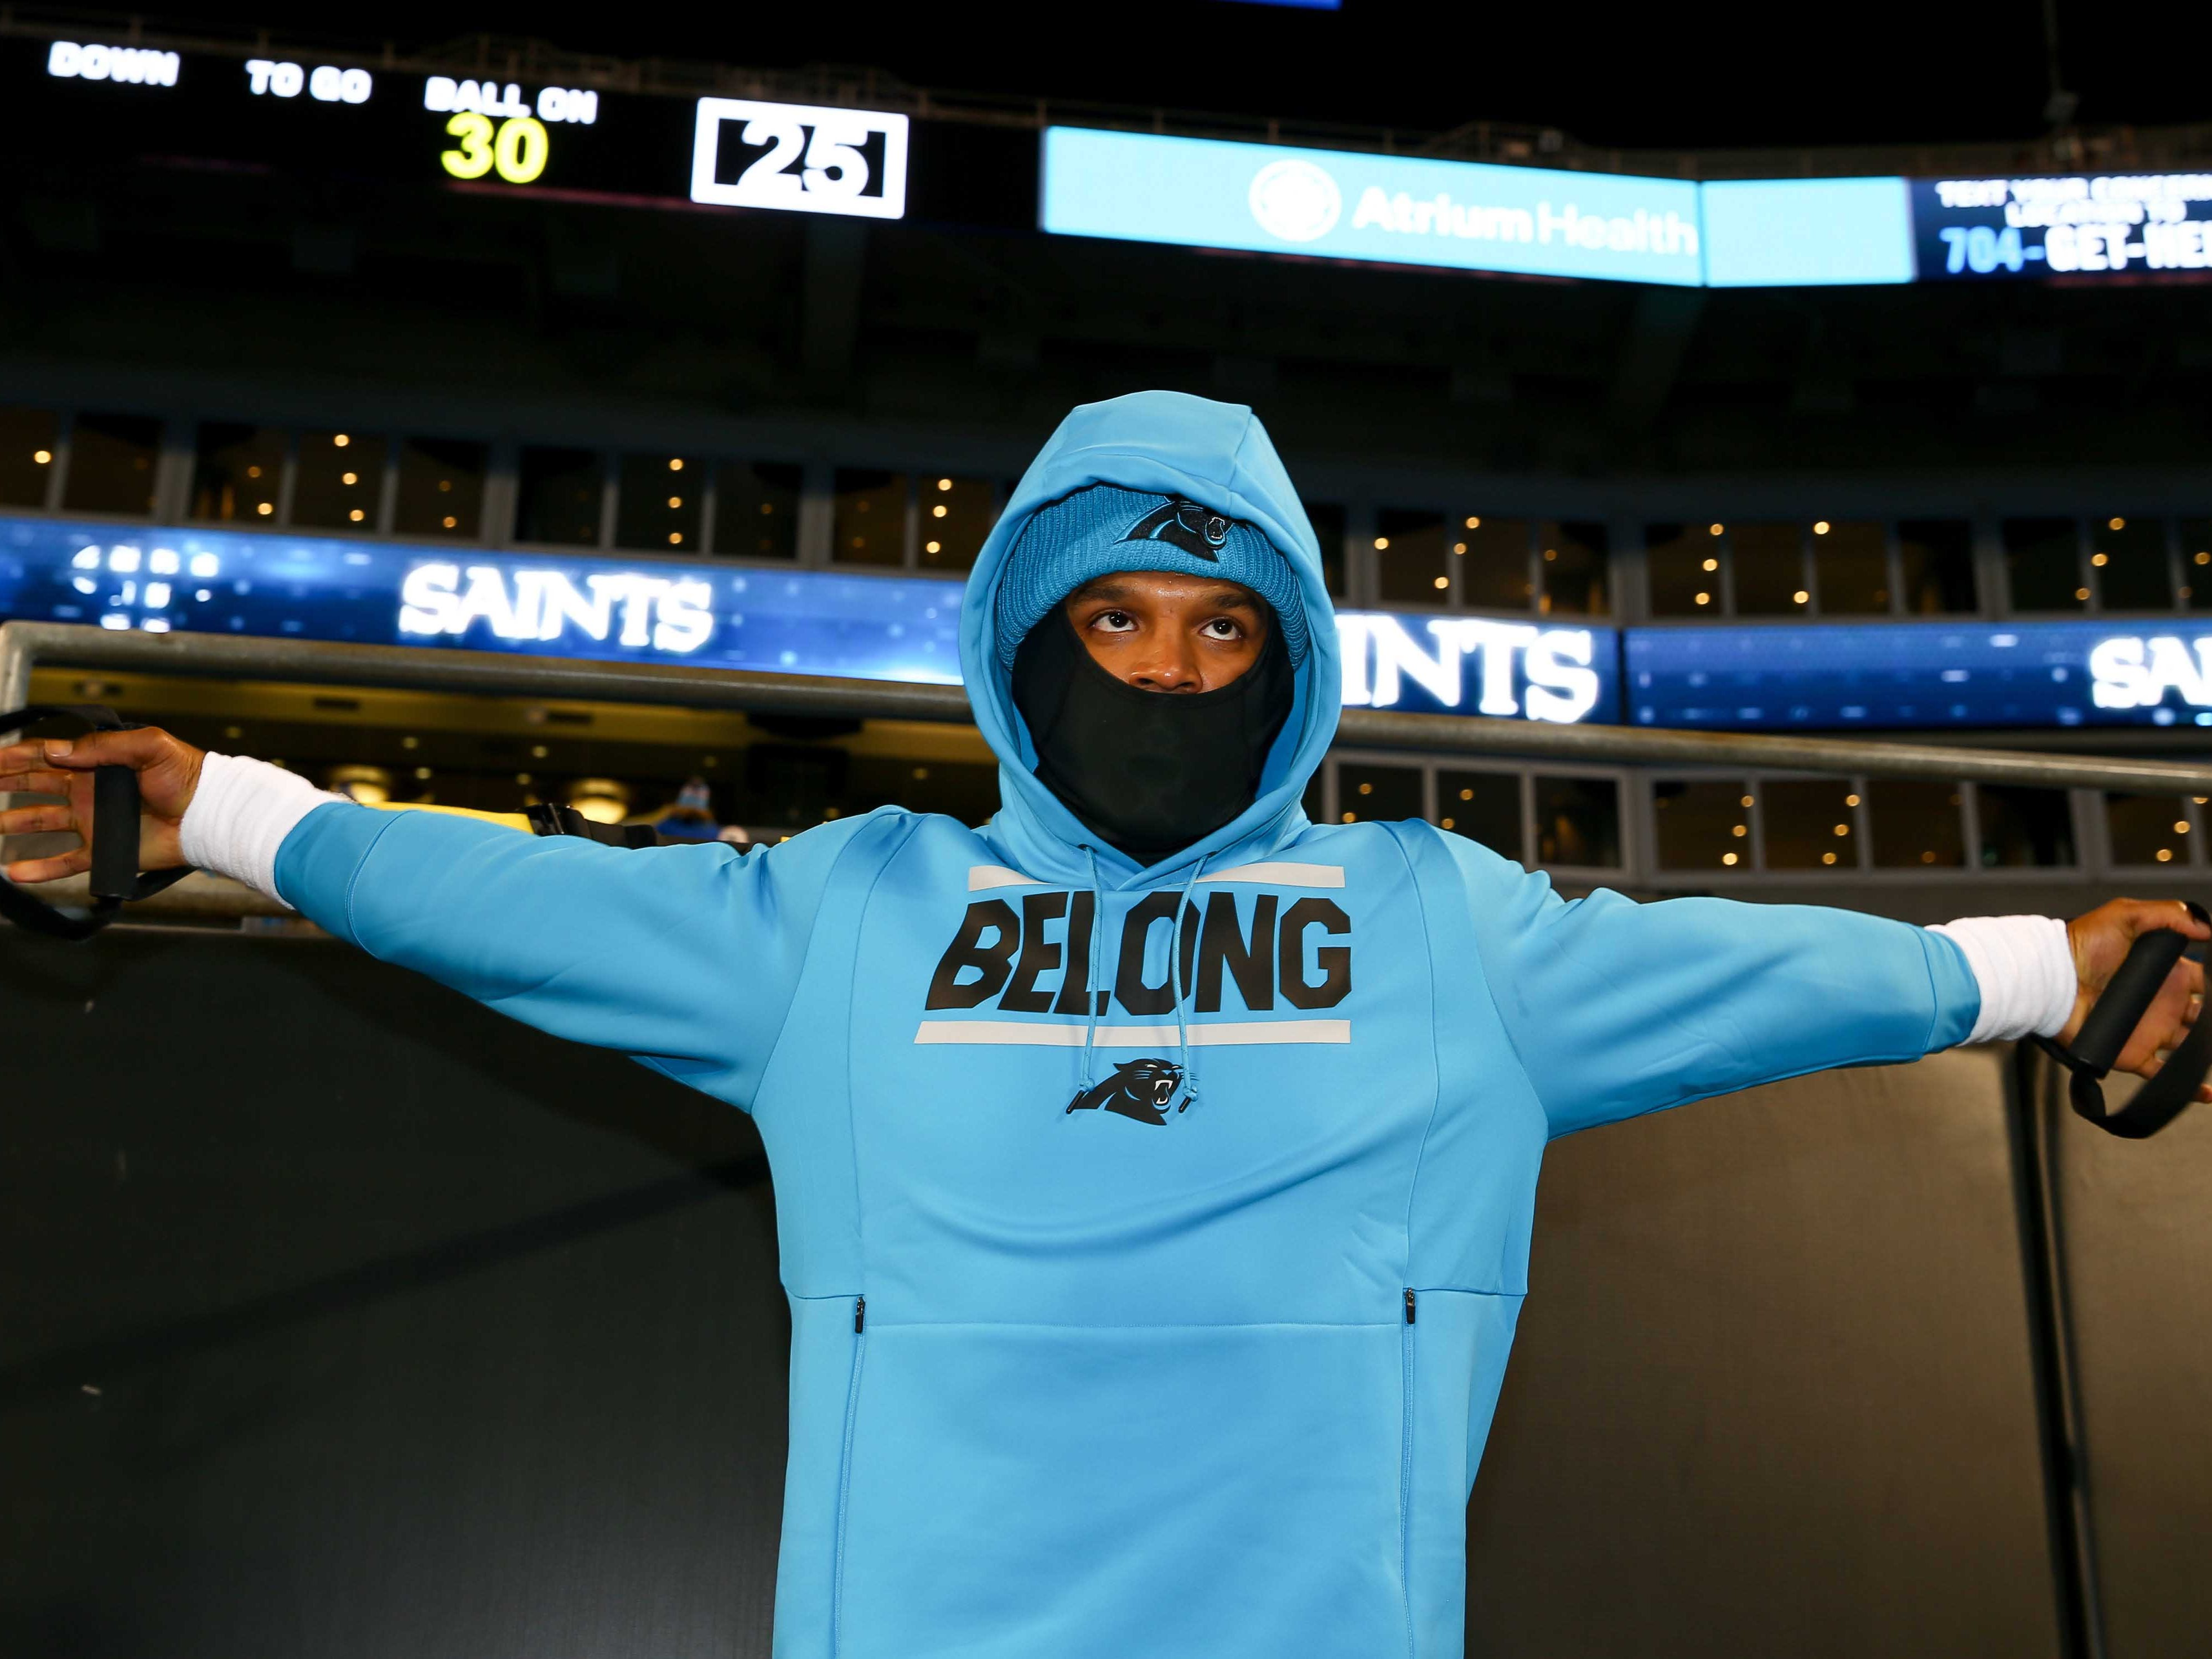 21. Panthers (20): Is 1-7 second half easily explained away by Cam Newton's bum shoulder, or is a more serious issue afoot? Several prominent vets not returning.